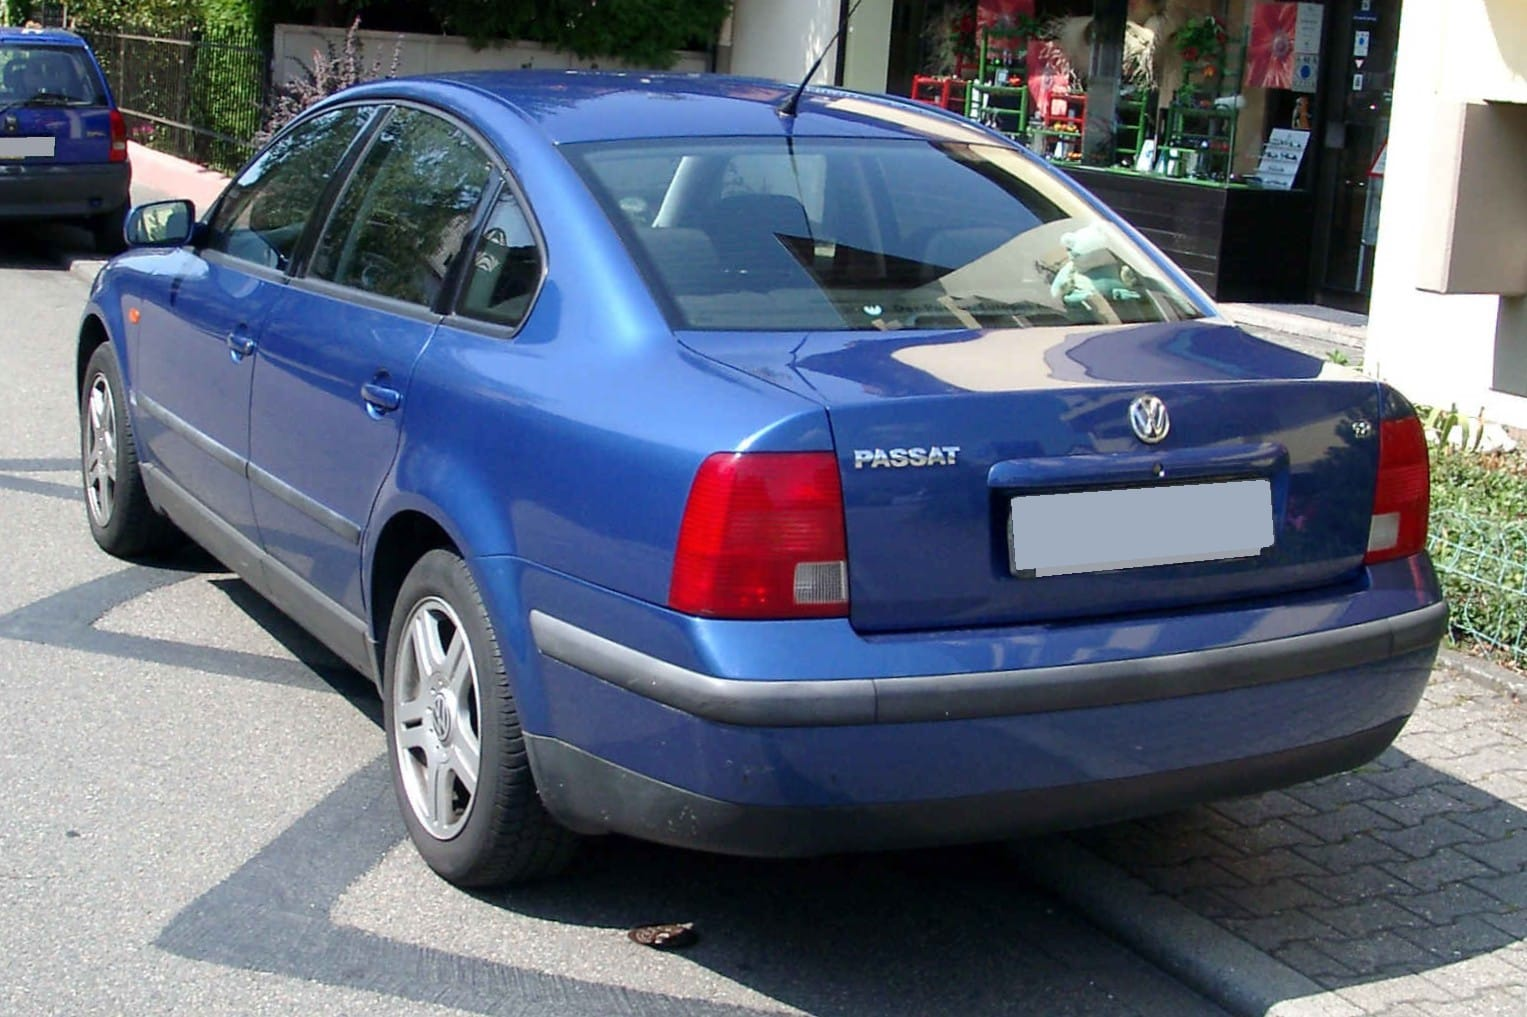 VW_Passat_B5_rear_20080816